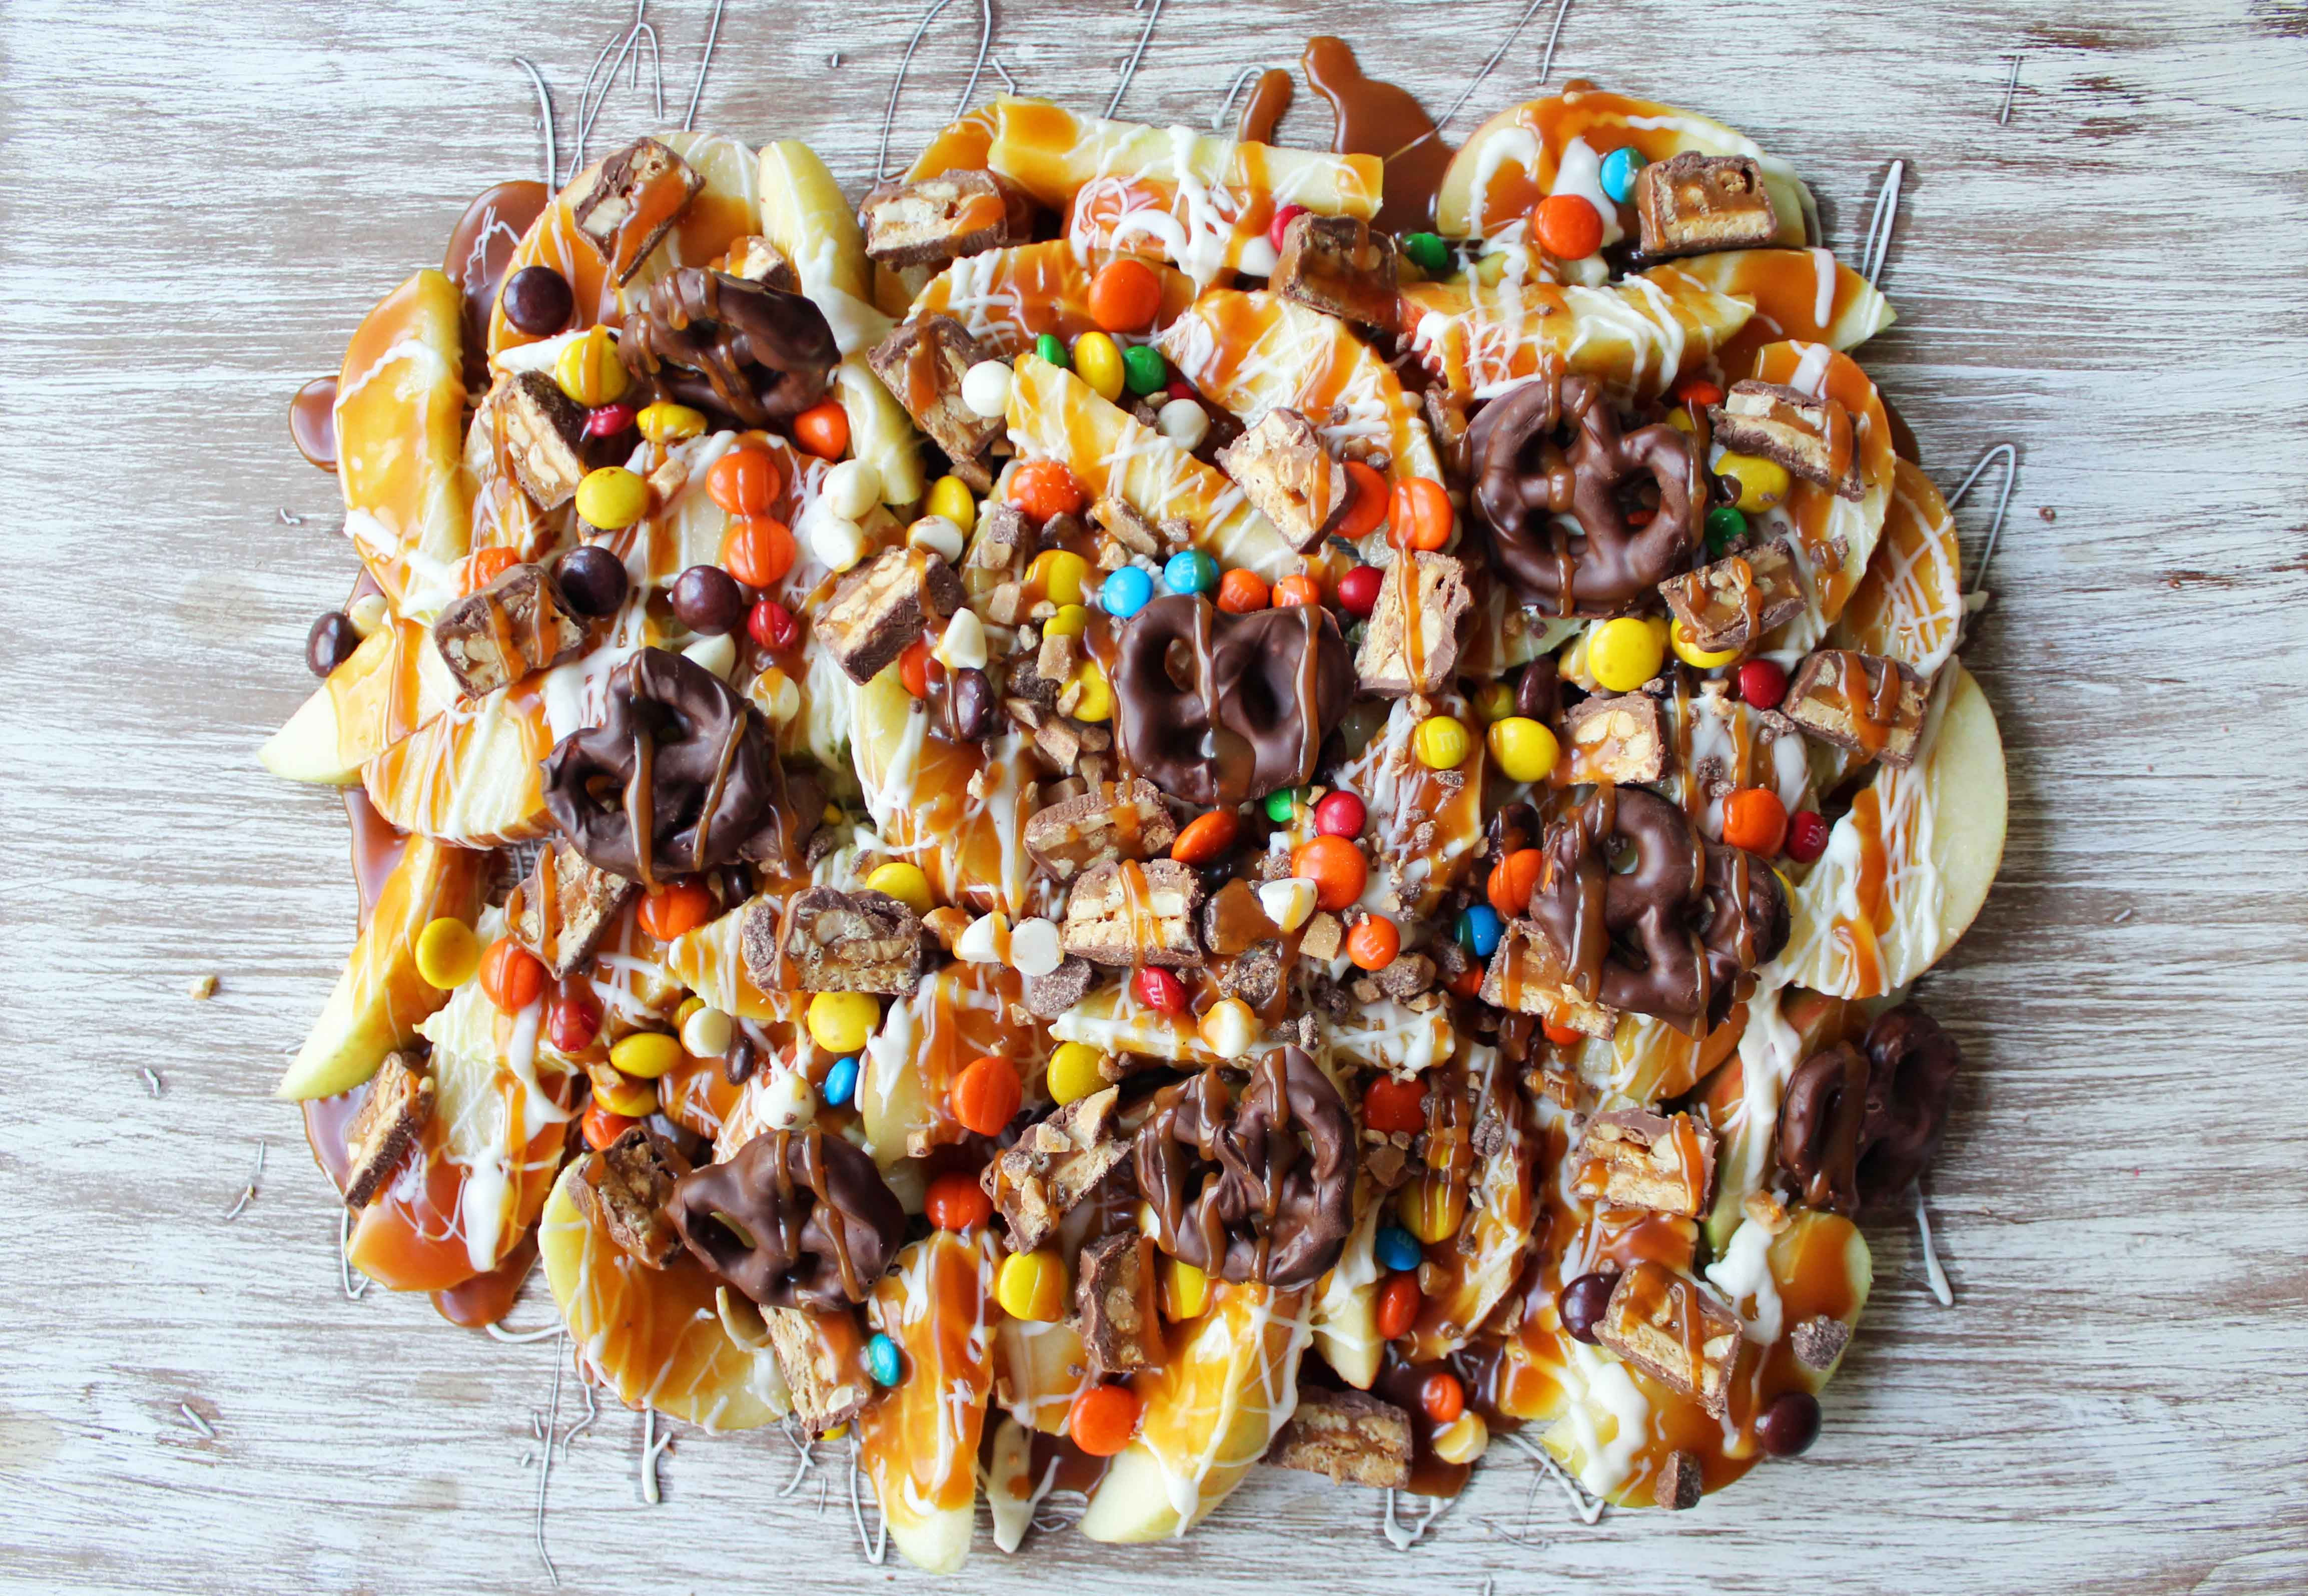 Candy Madness Caramel Apple Nachos by Modern Honey. Crisp Apples topped with Salted Caramel, White Chocolate, M &M's, Reeses Pieces, Heath Toffee Bits, Snickers, and Chocolate Covered Pretzels. These Caramel Apple Nachos are much easier than making caramel apples and will be a huge hit at your next party!